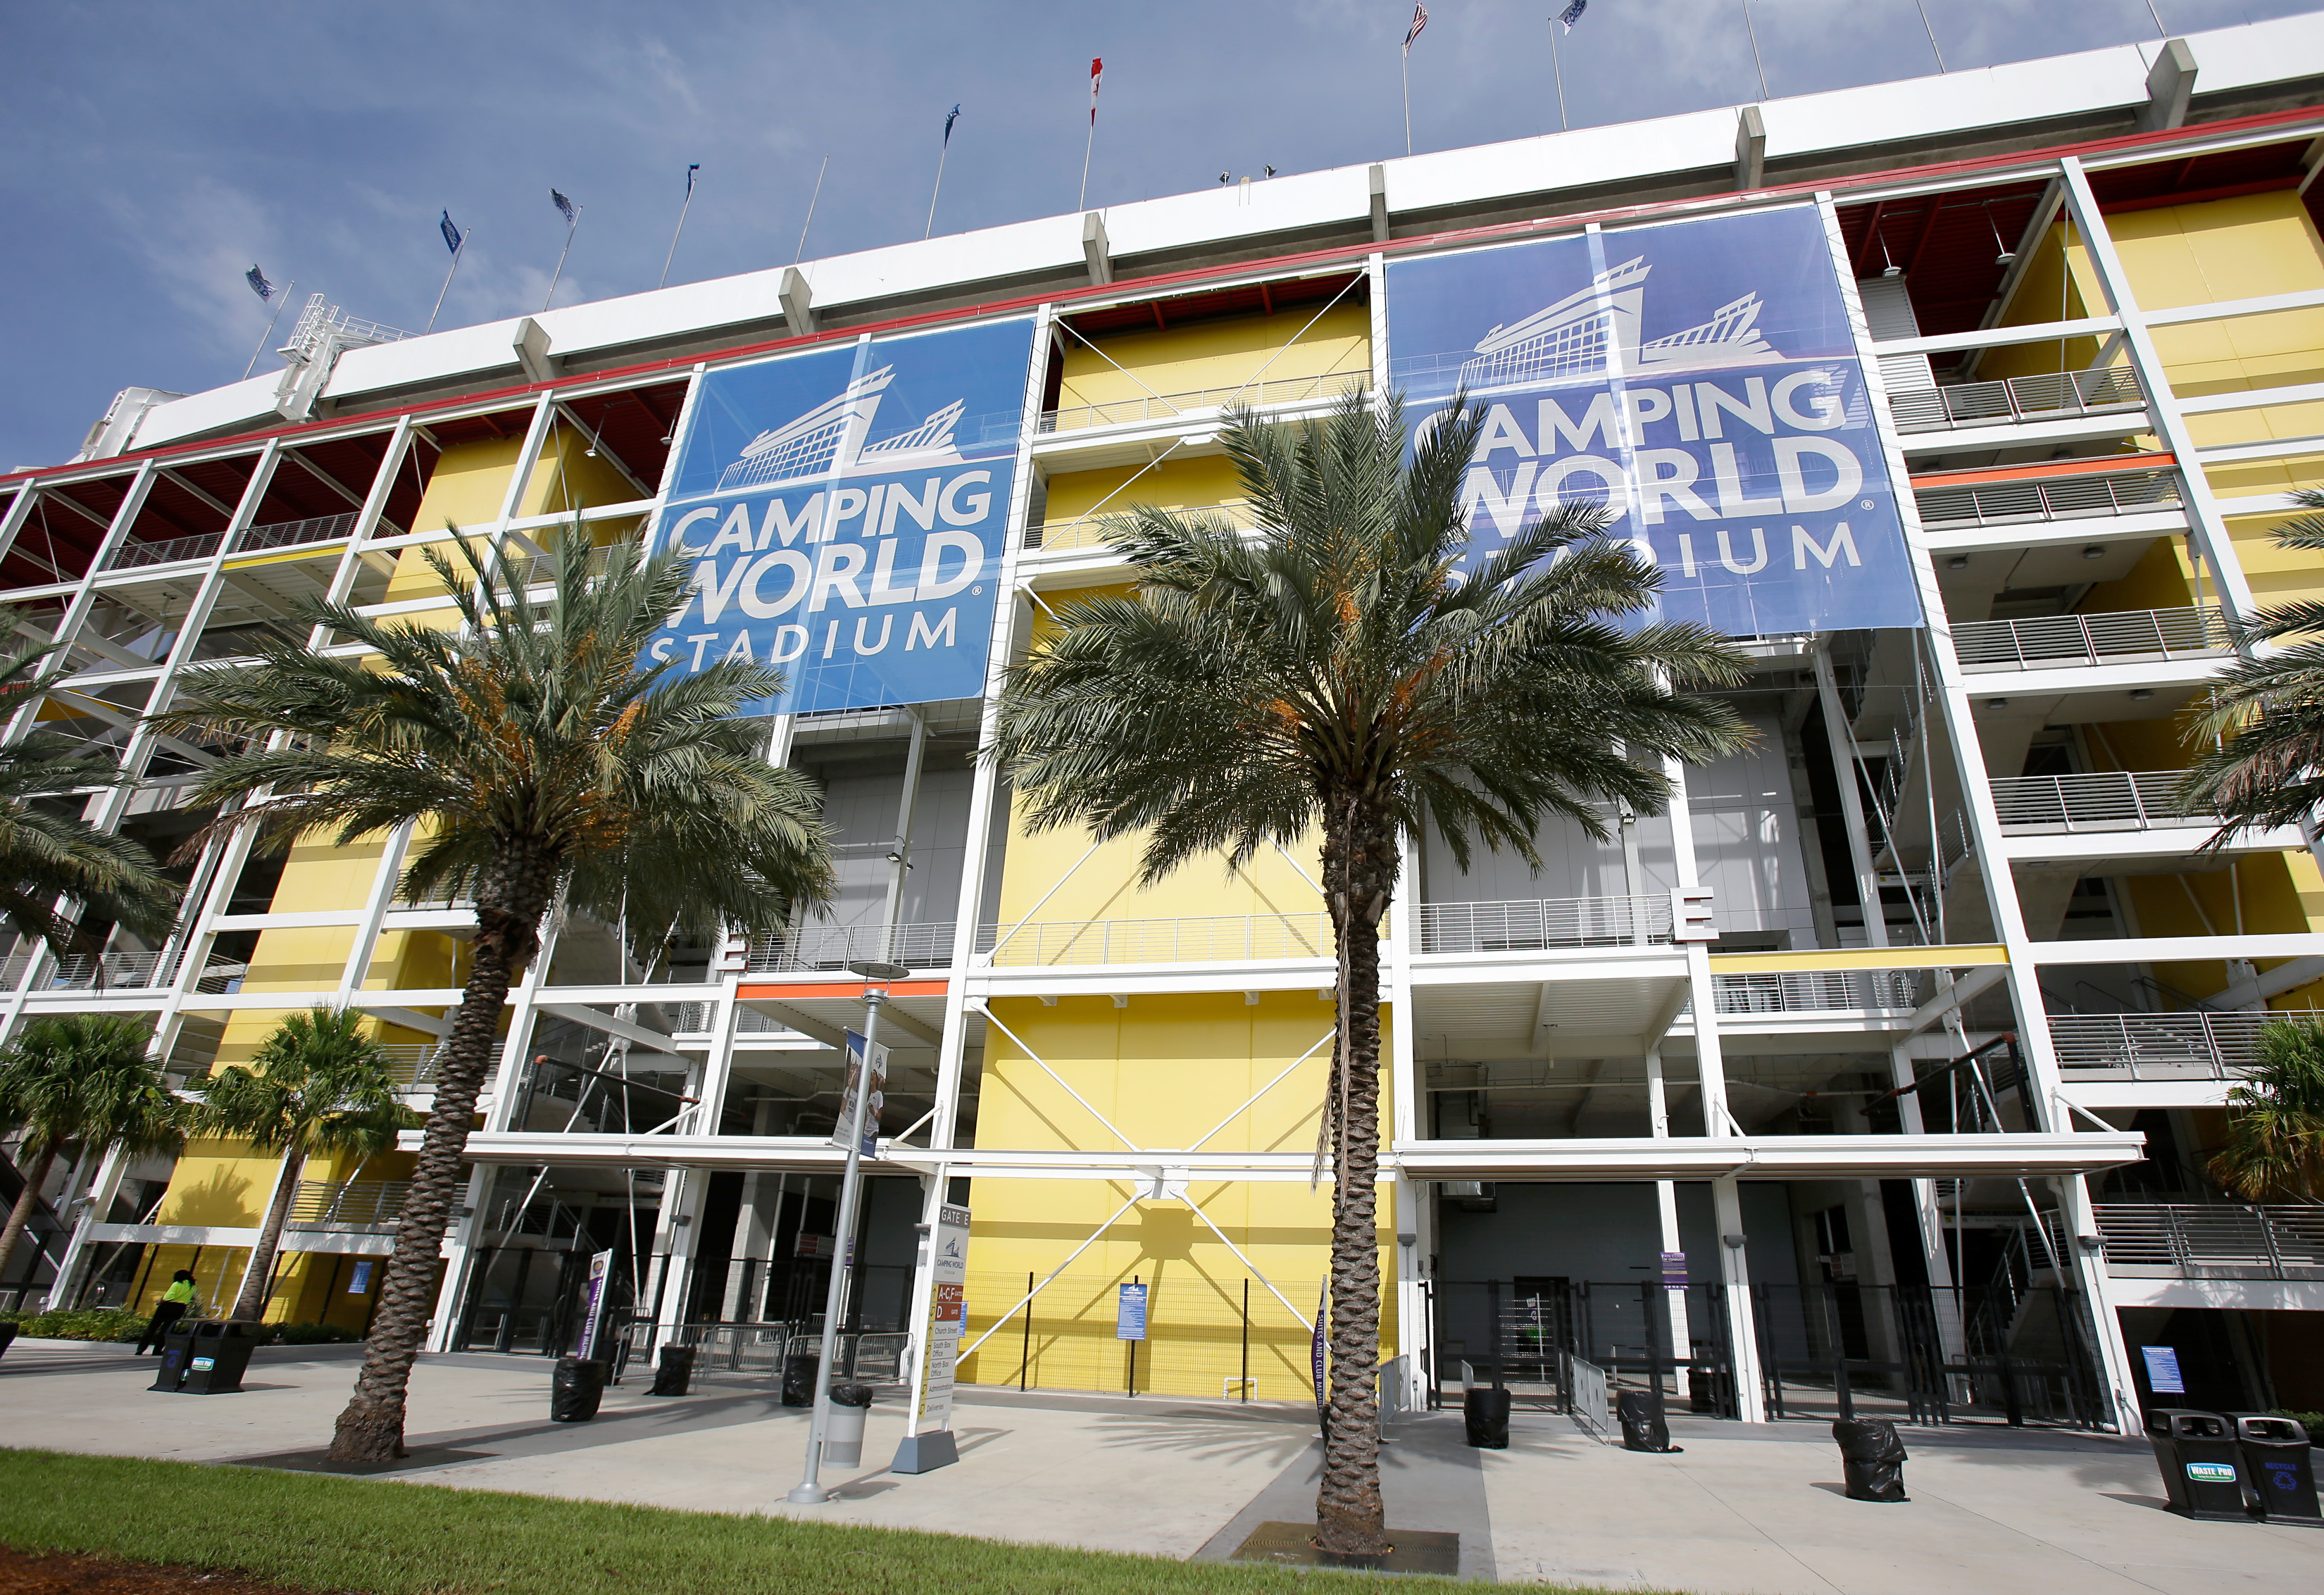 This Wednesday, Aug. 24, 2016 photo shows an exterior view of Camping World Stadium in Orlando, Fla. No NFL games have been played in the Stadium in nearly two decades. Atlanta and Miami will be playing an NFL preseason game in the stadium on Thursday. (A